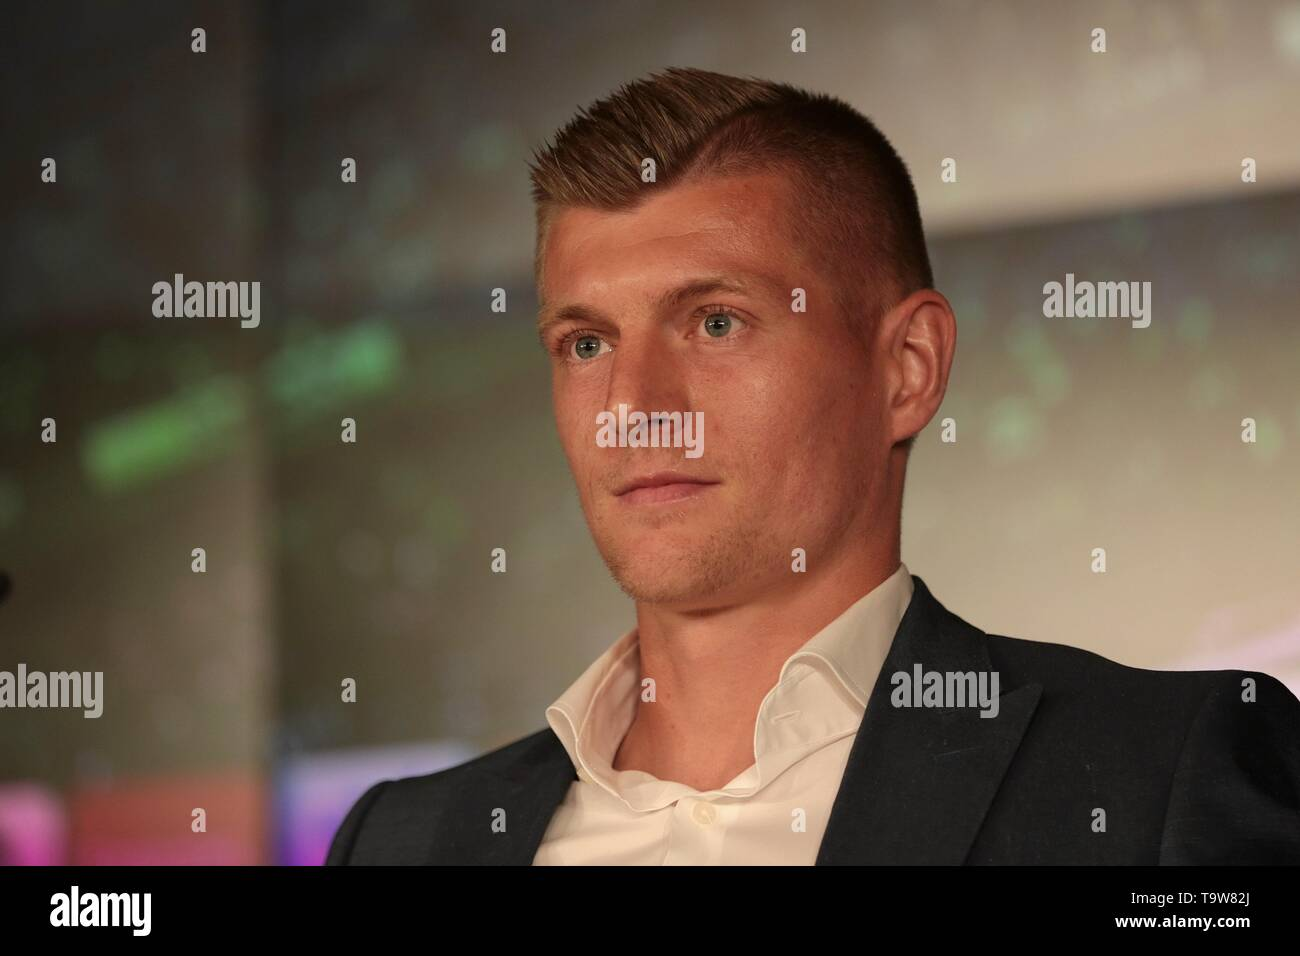 Madrid, Spain; 20/05/2019. Press conference Real Madrid CF and Toni Kroos have agreed to extend the player's contract, which remains linked to the club until June 30, 2023. And director of institutional relations of the club Emilio Butragueño. Santiago Bernabeu stadium. Photo: Juan Carlos Rojas/Picture Alliance   usage worldwide - Stock Image